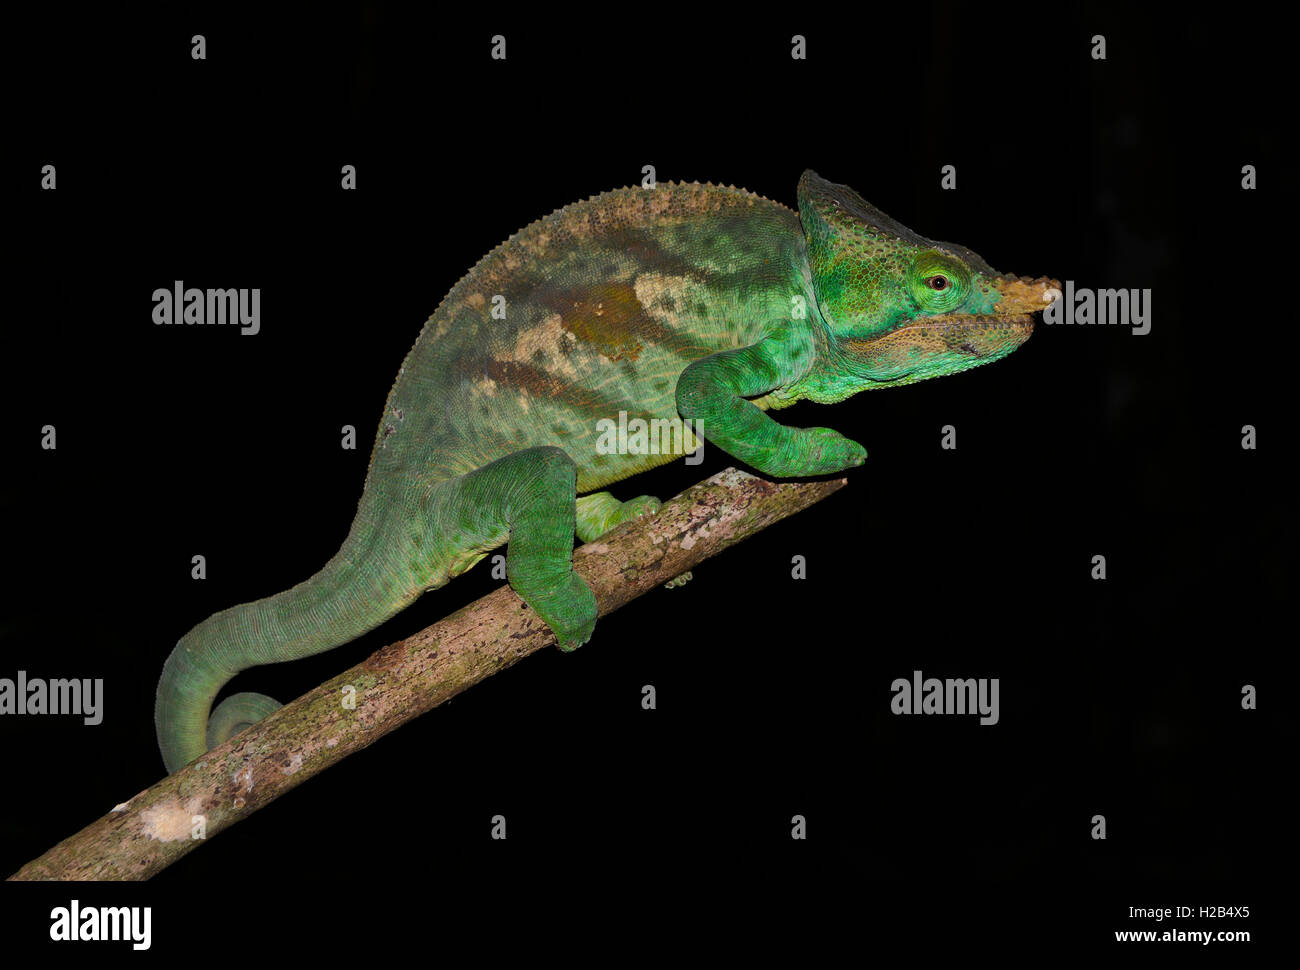 Parson's chameleon (Calumma parsonii cristifer), male, rainforest, Andasibe-Mantadia National Park, east Madagascar - Stock Image